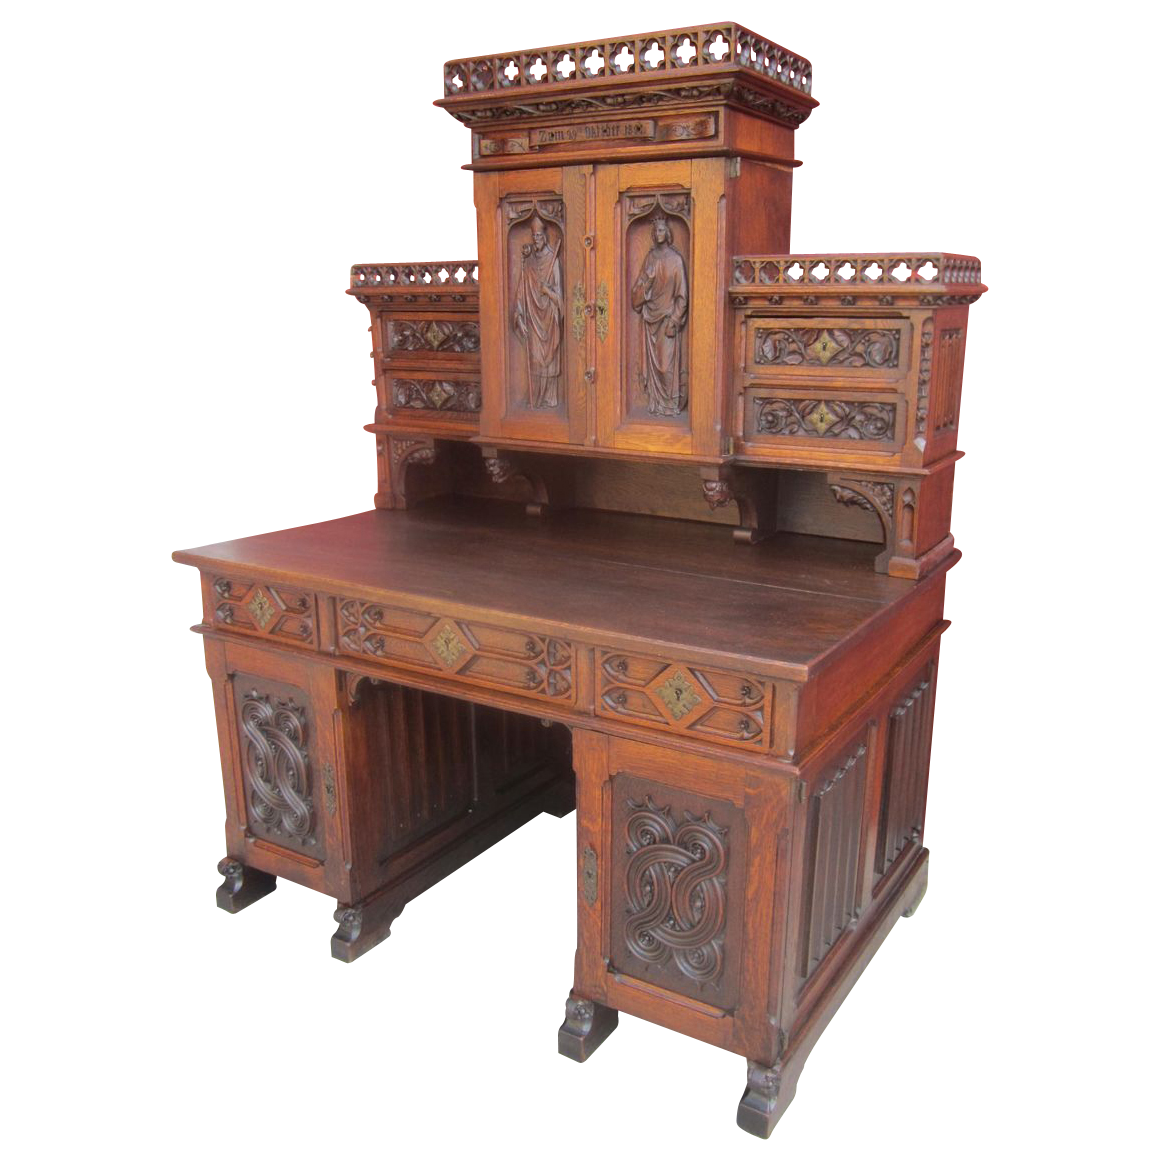 French antique gothic desk antique furniture sold on ruby lane for Antique furnishings